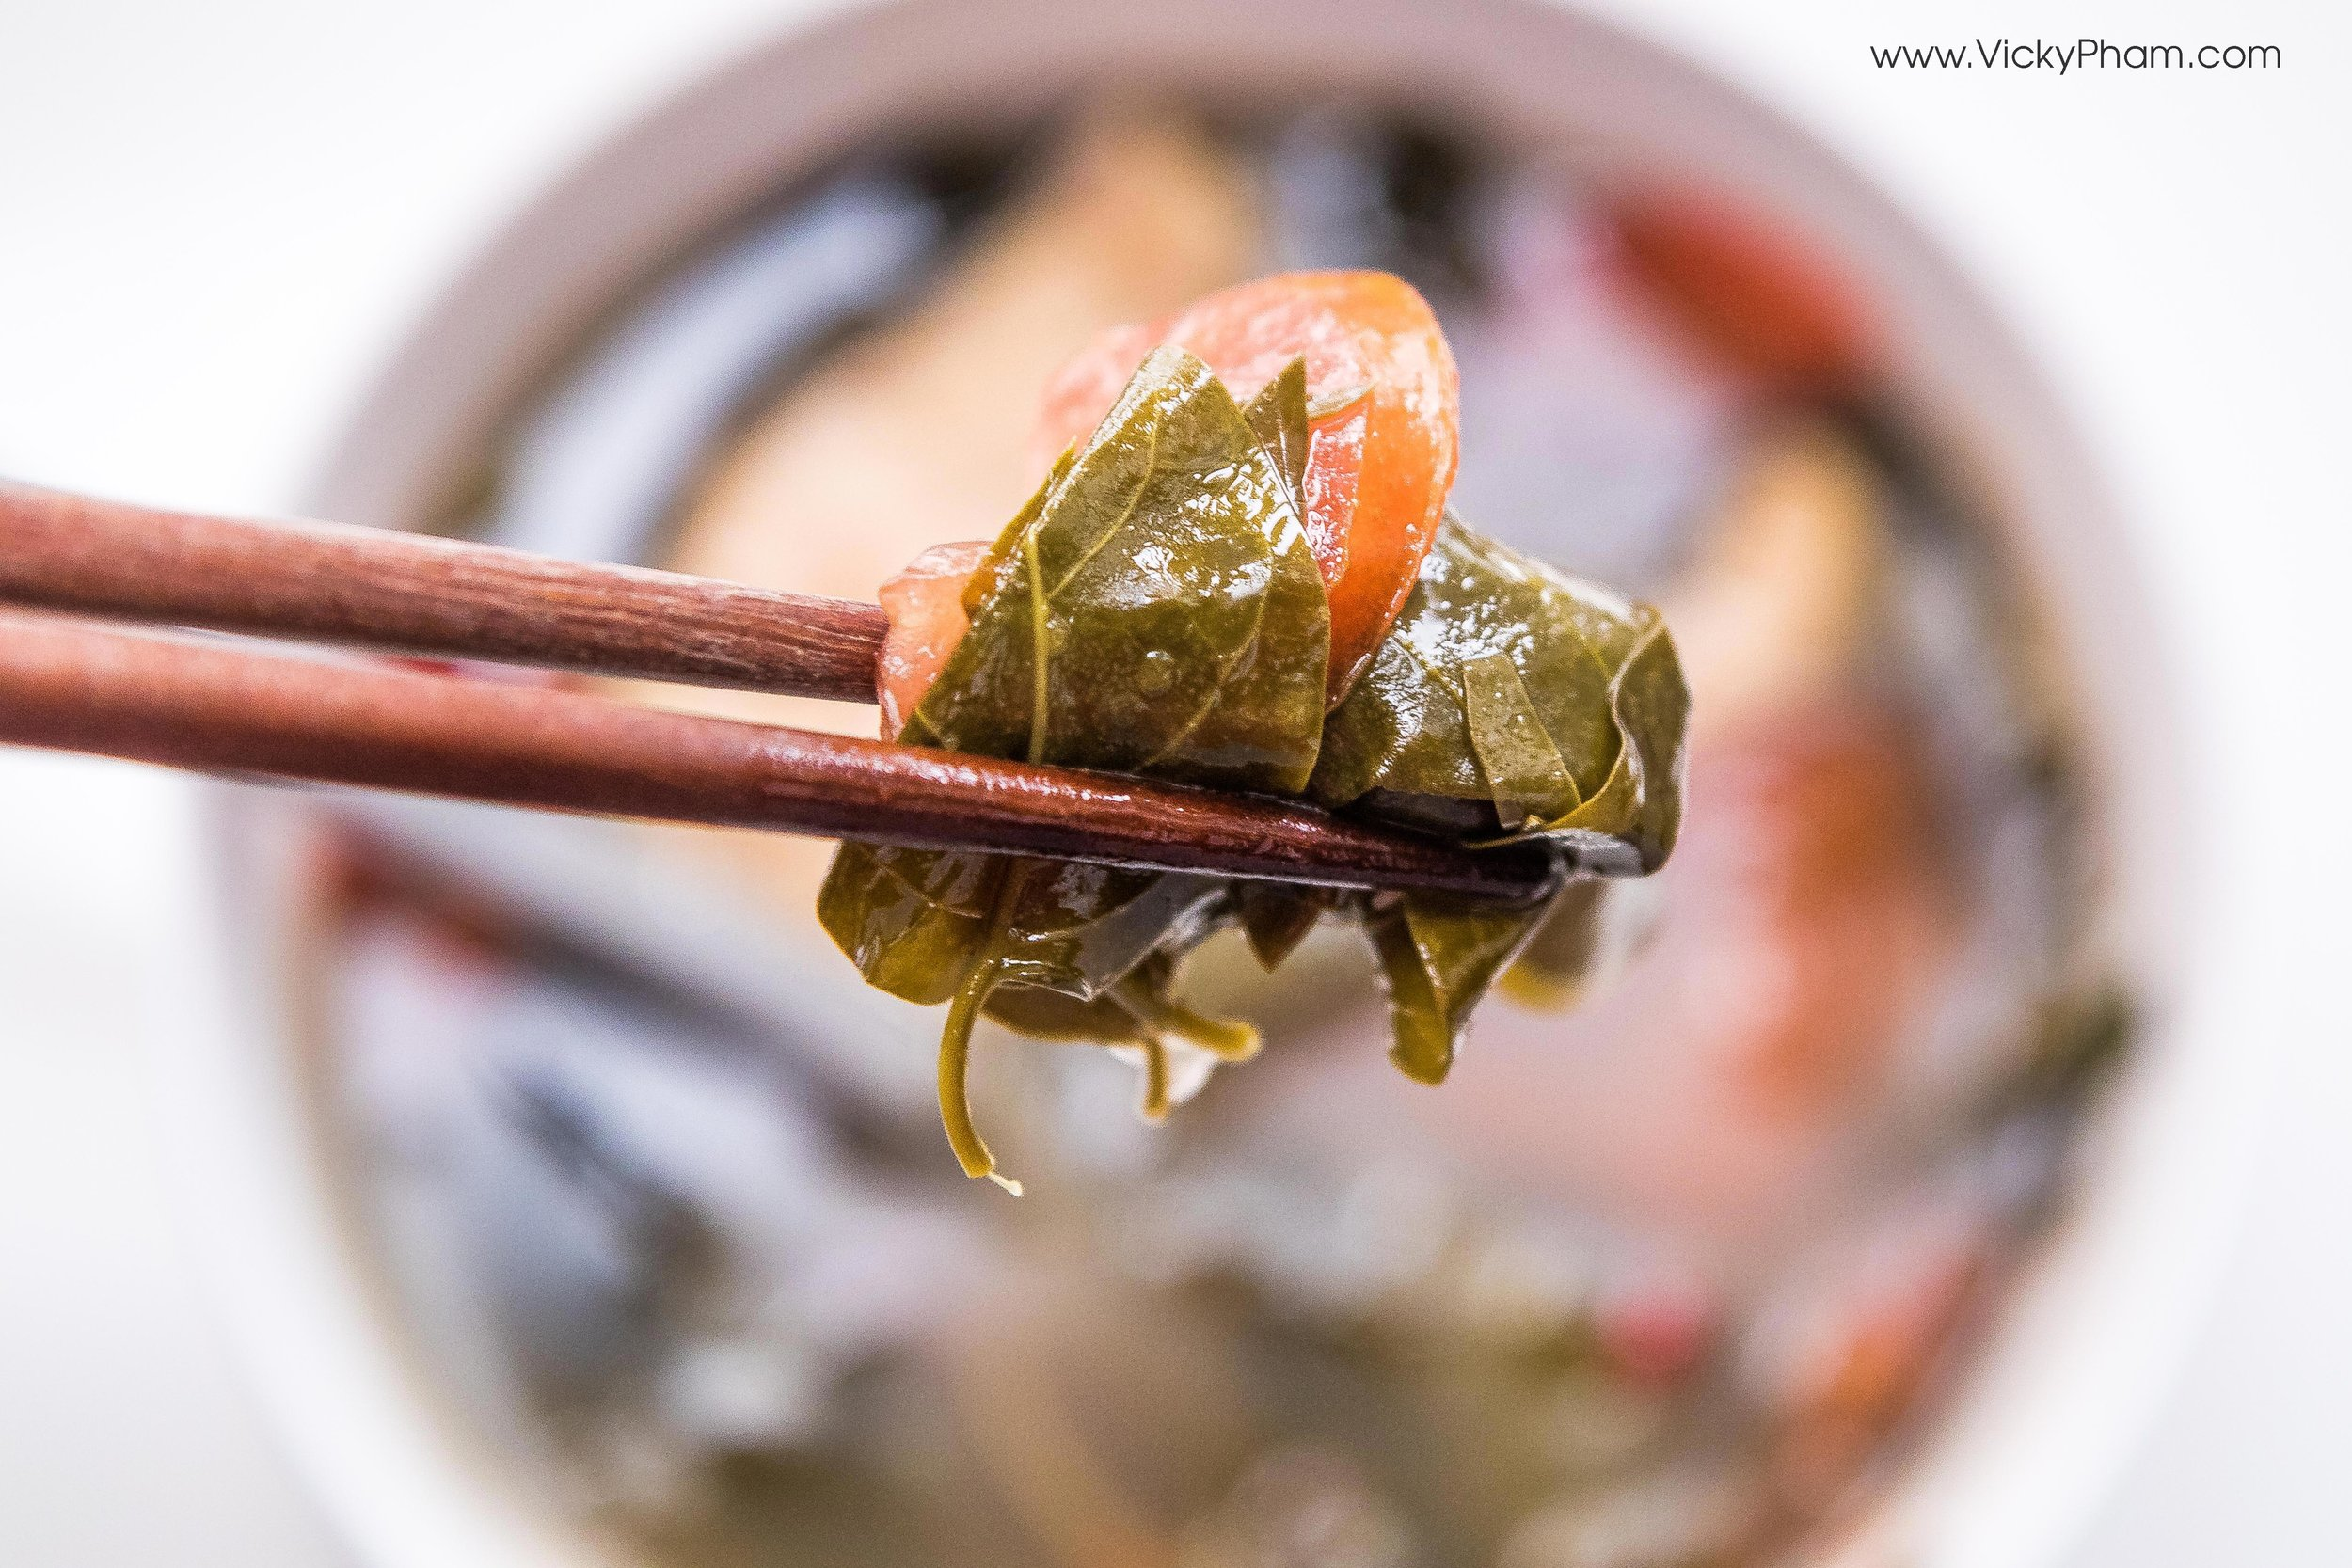 Vietnamese Sour Soup with River Leaf (Canh Chua La Giang)